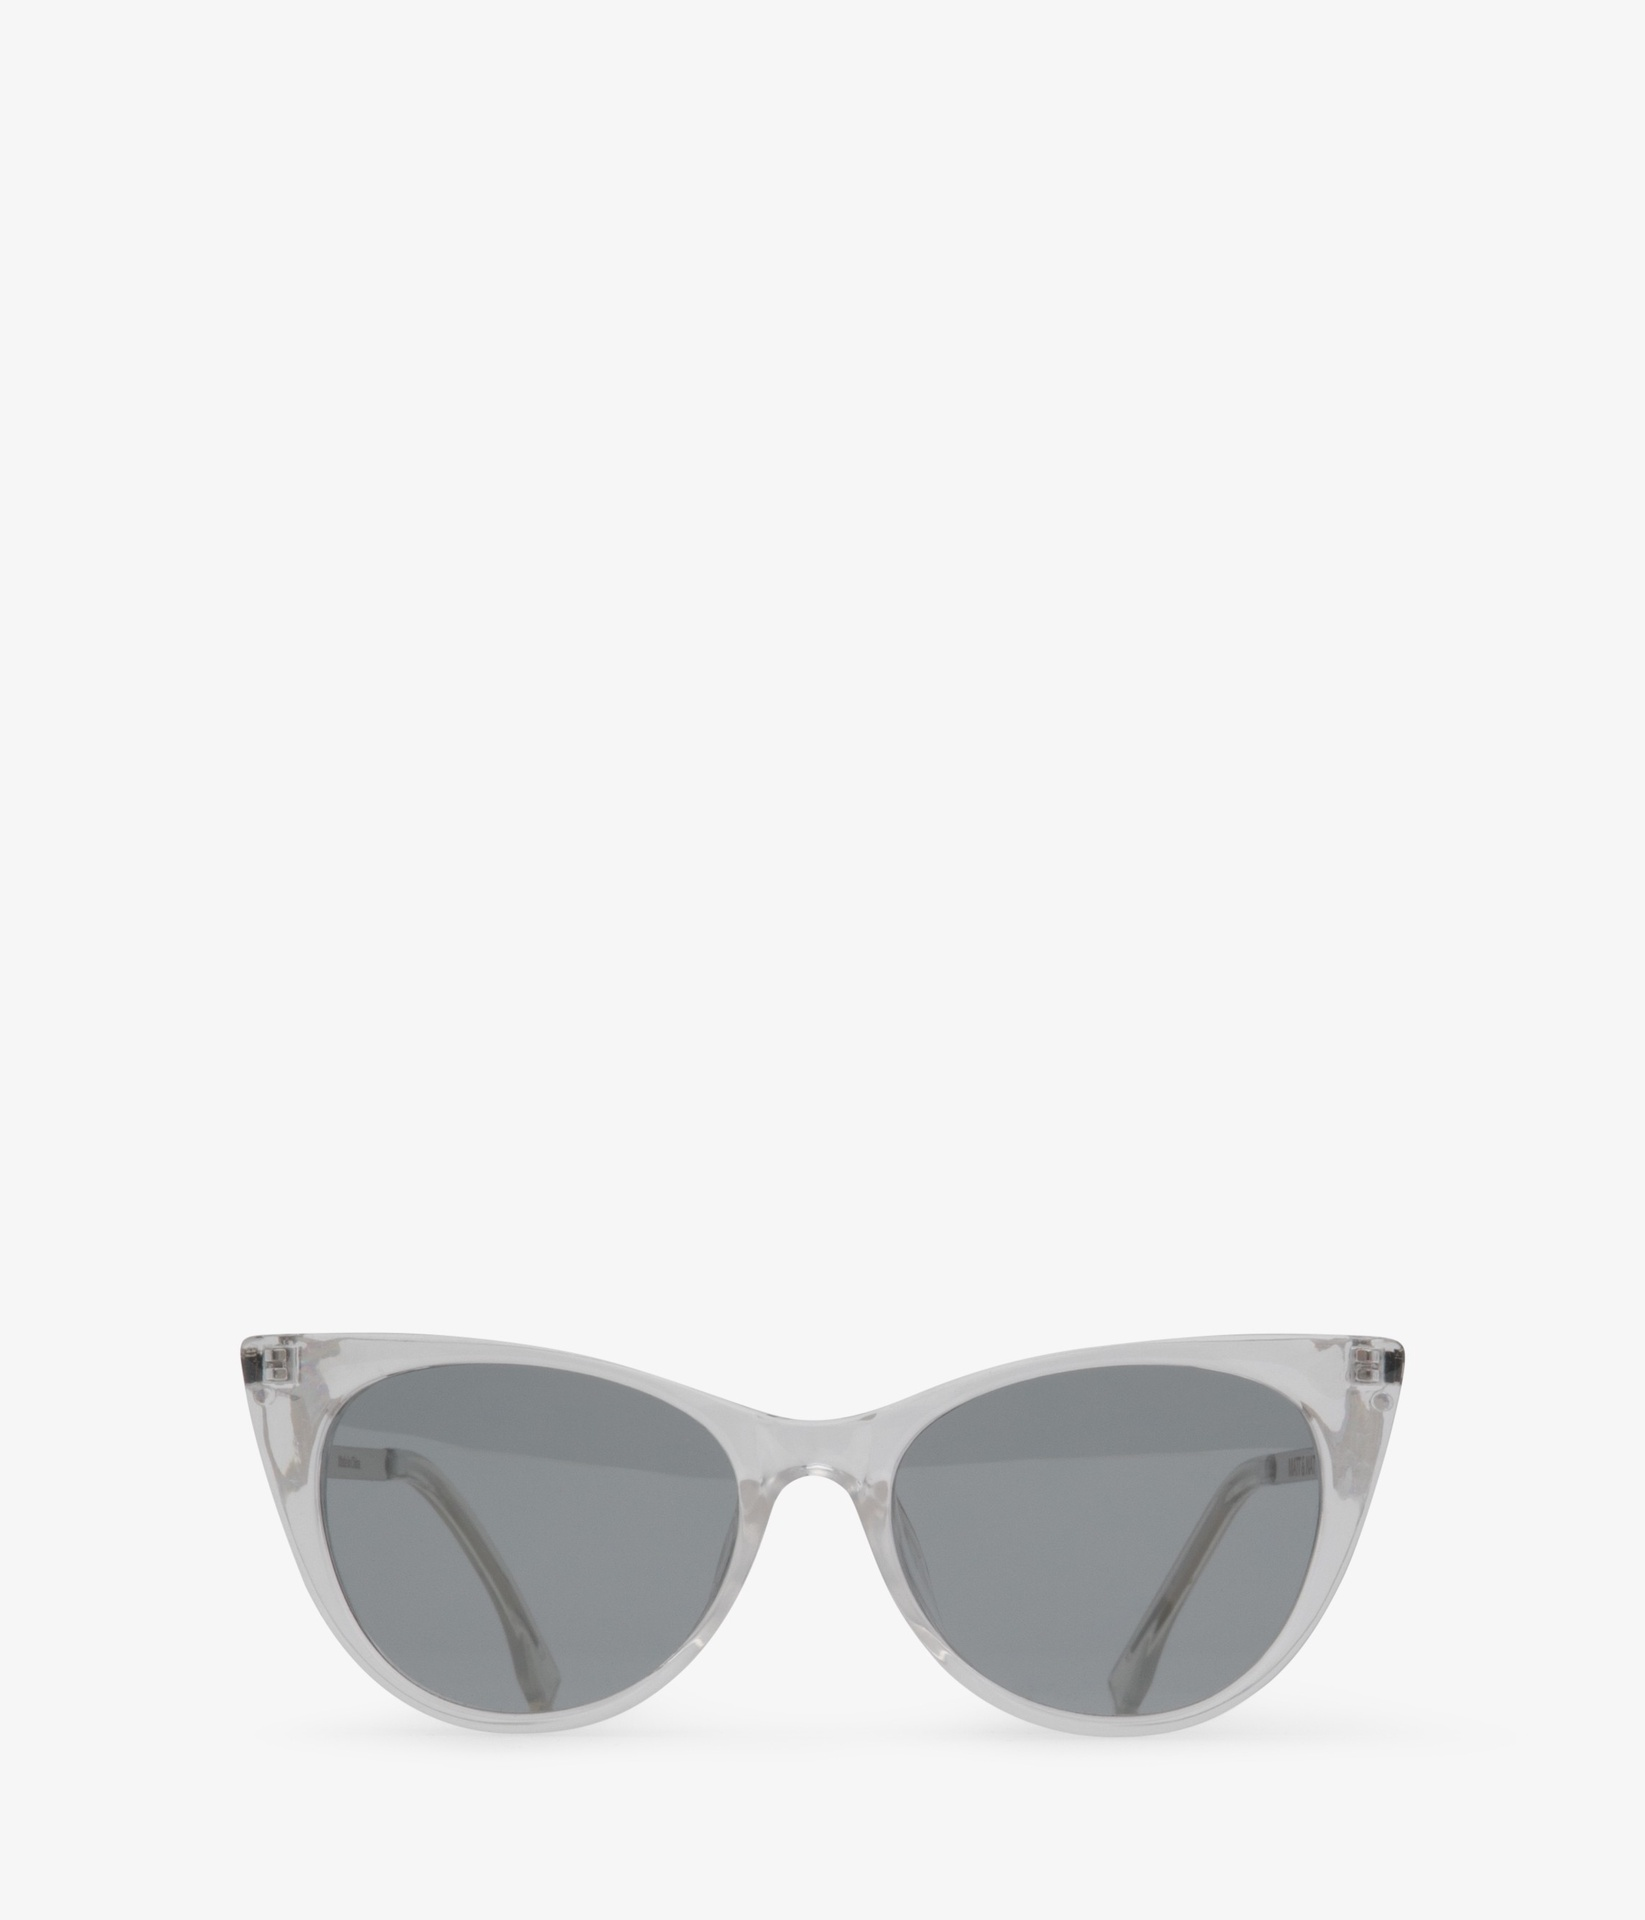 MATT & NAT - GABI SUNGLASSES IN GREY